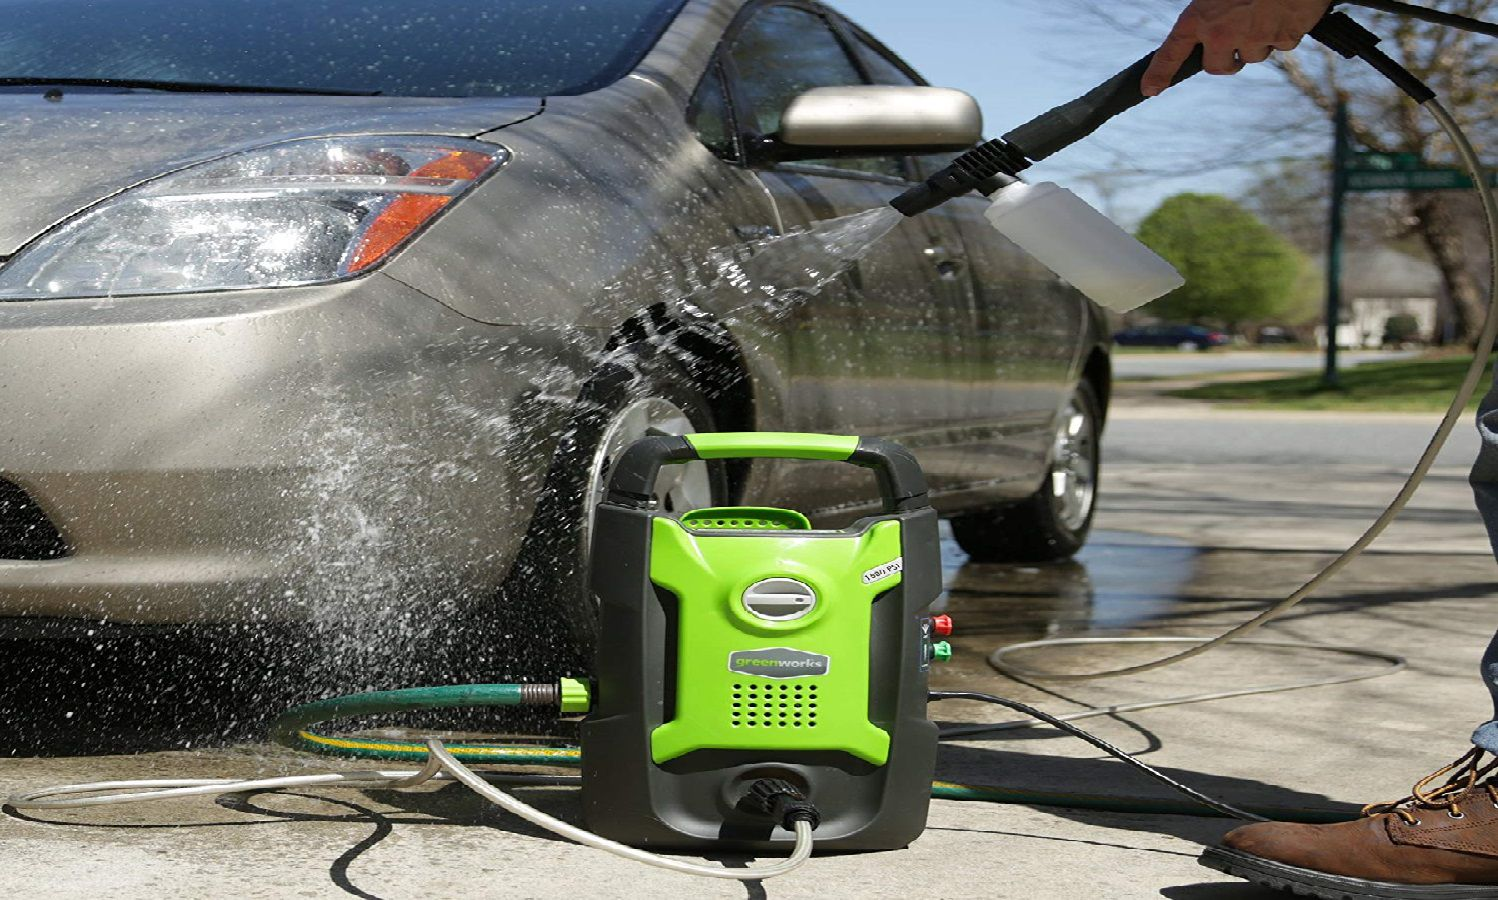 Greenworks 1500 PSI Electric Power Washer